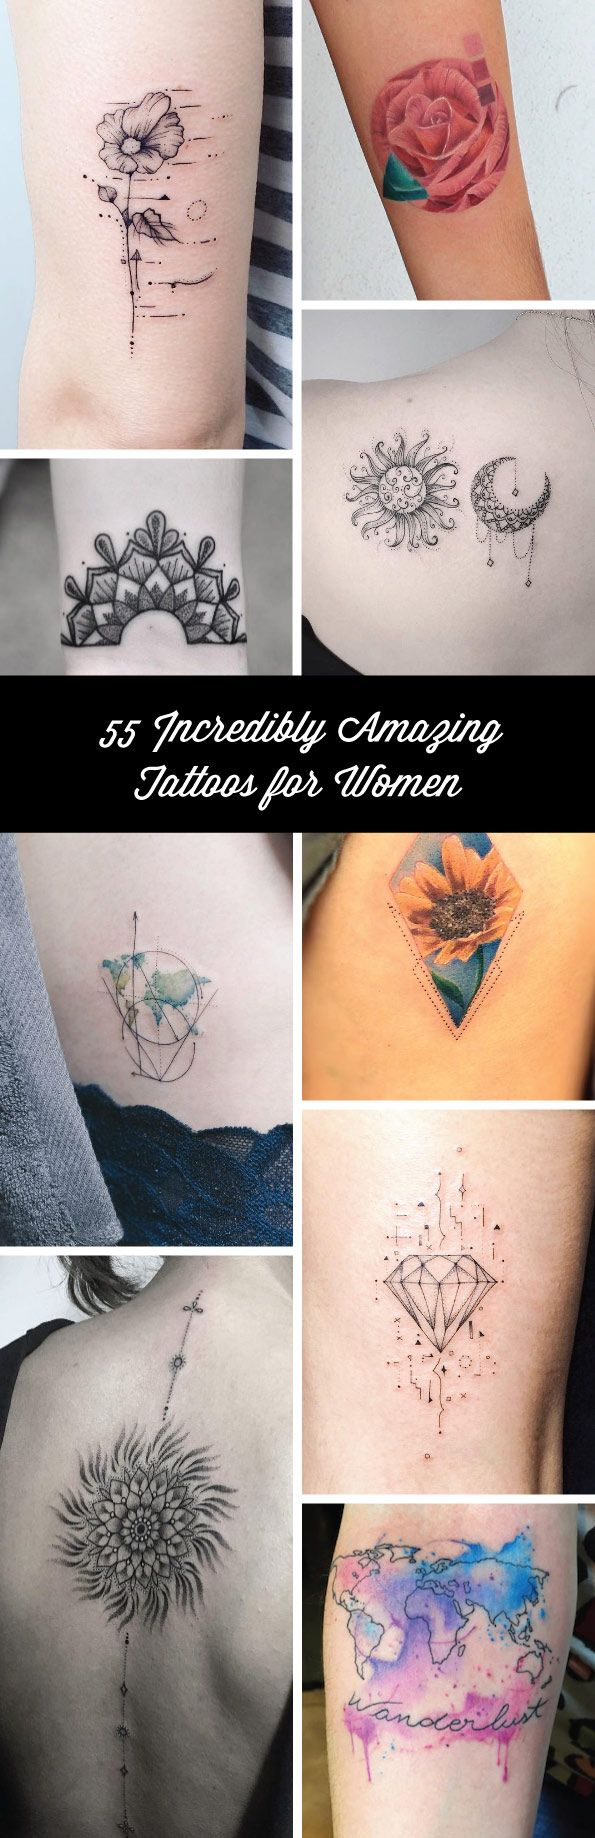 best 25+ chic tattoo ideas on pinterest | writing tattoos